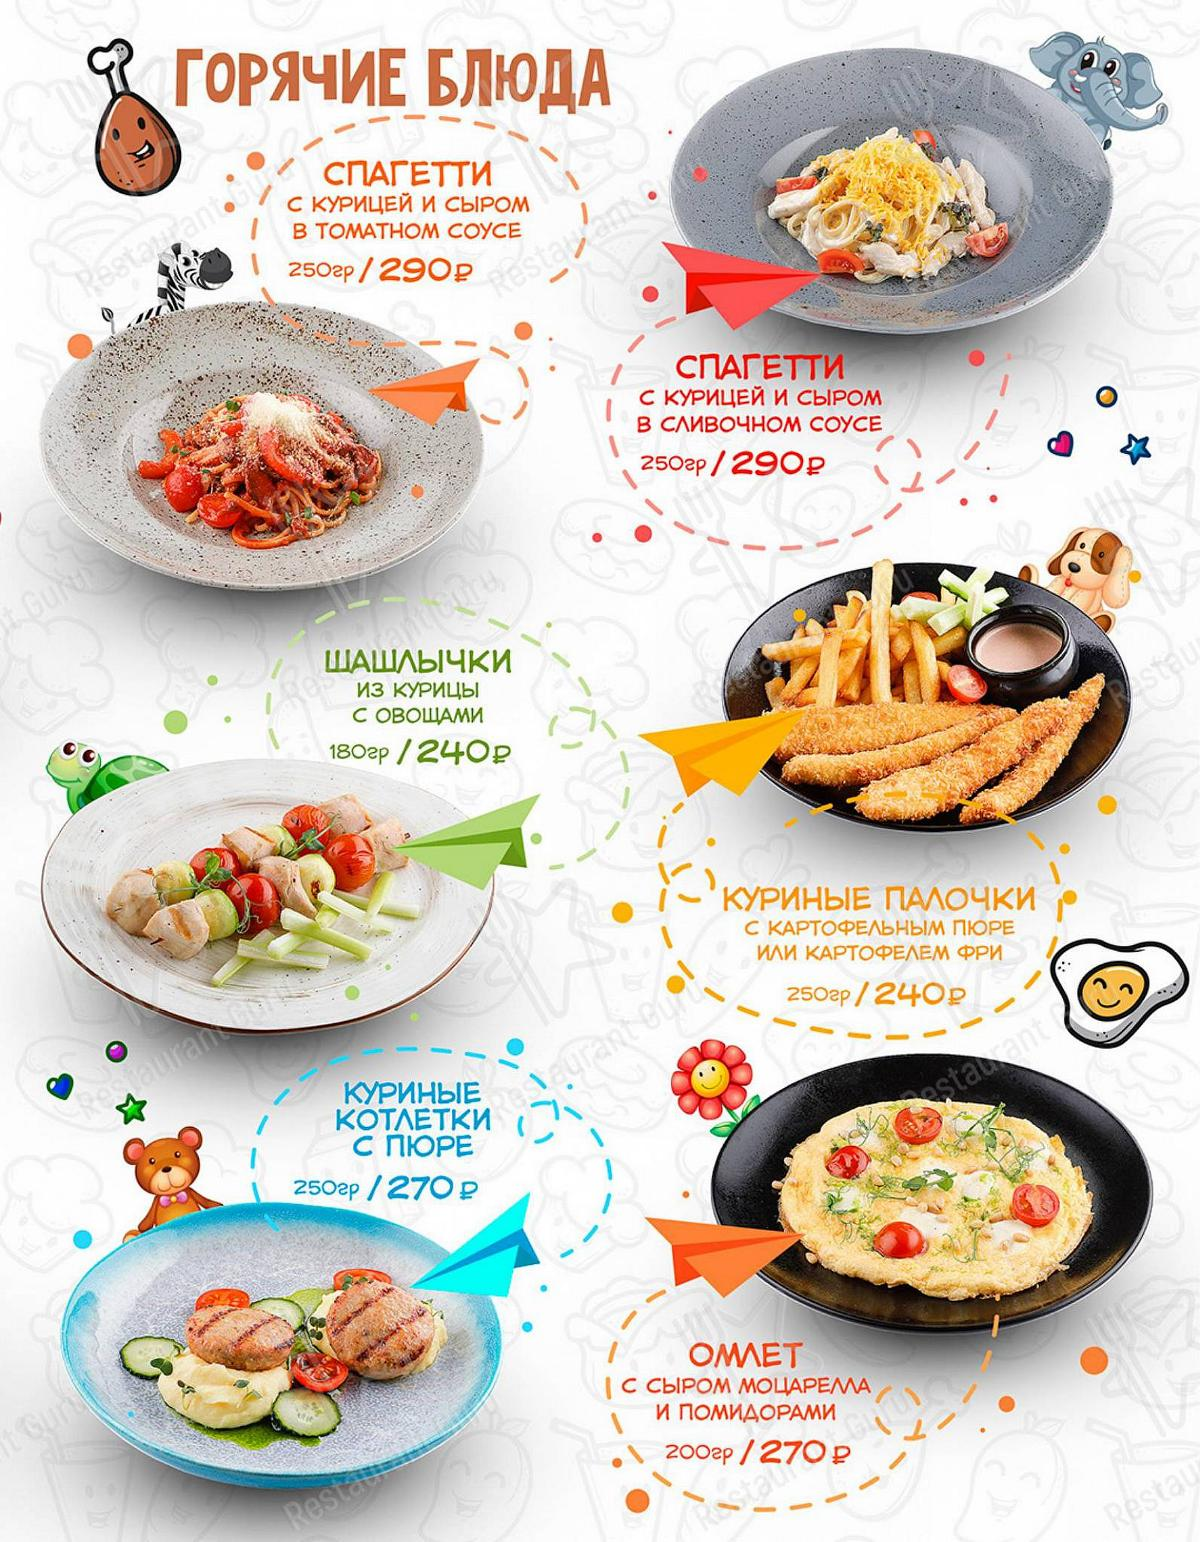 MOST menu - meals and drinks